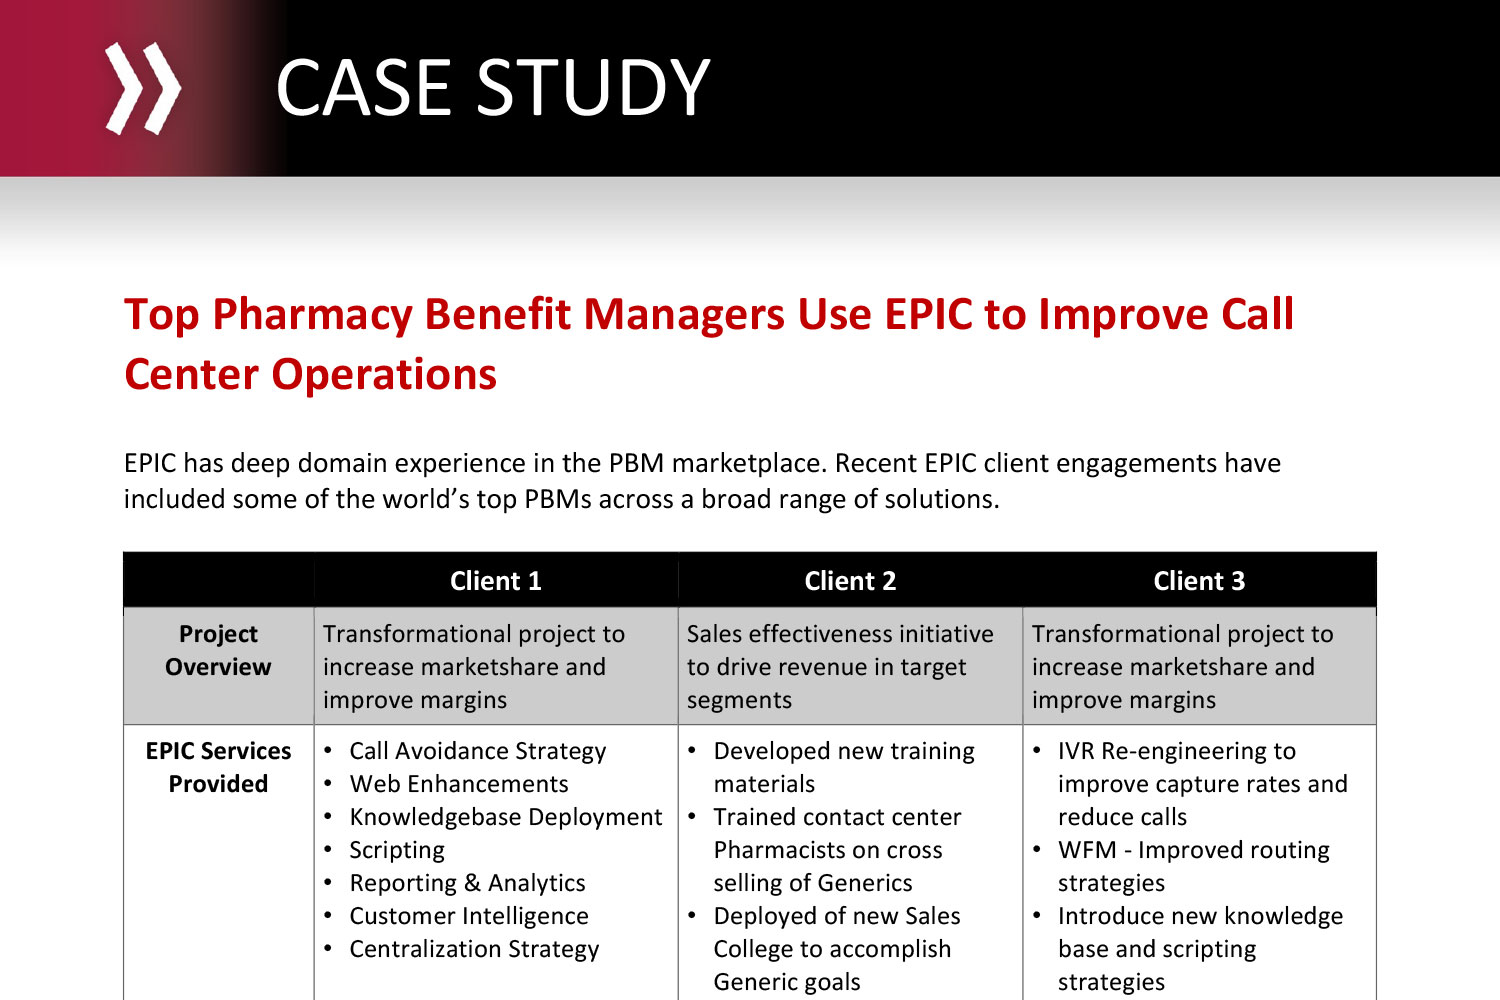 Top Pharmacy Benefit Managers Use EPIC to Improve Call Center Operations